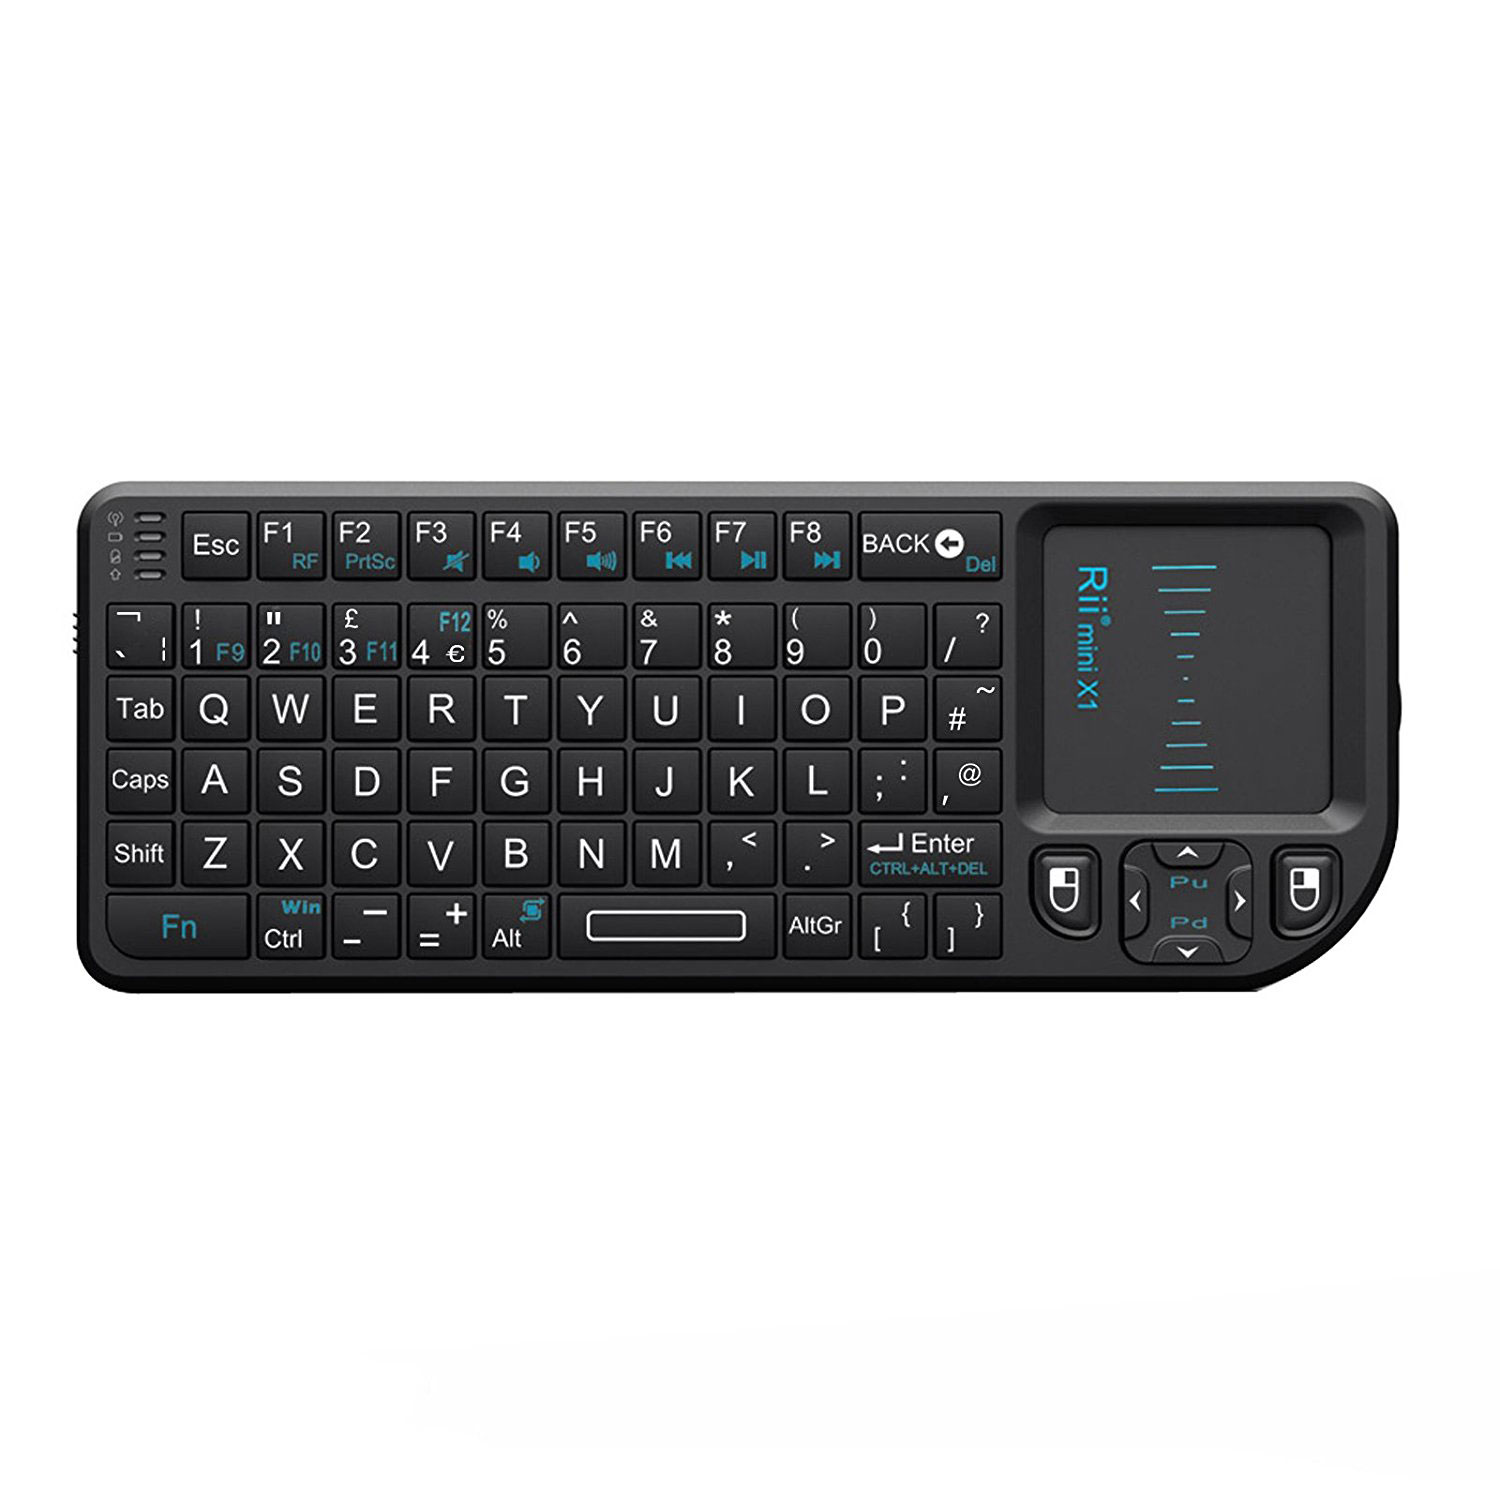 Clavier PC Riitek RII Mini Wireless Keyboard X1 Clavier compact sans fil pour Windows - Mac OS X - Linux - Android - Smart TV - PlayStation 3 et 4 - Xbox 360 et One - Raspberry Pi